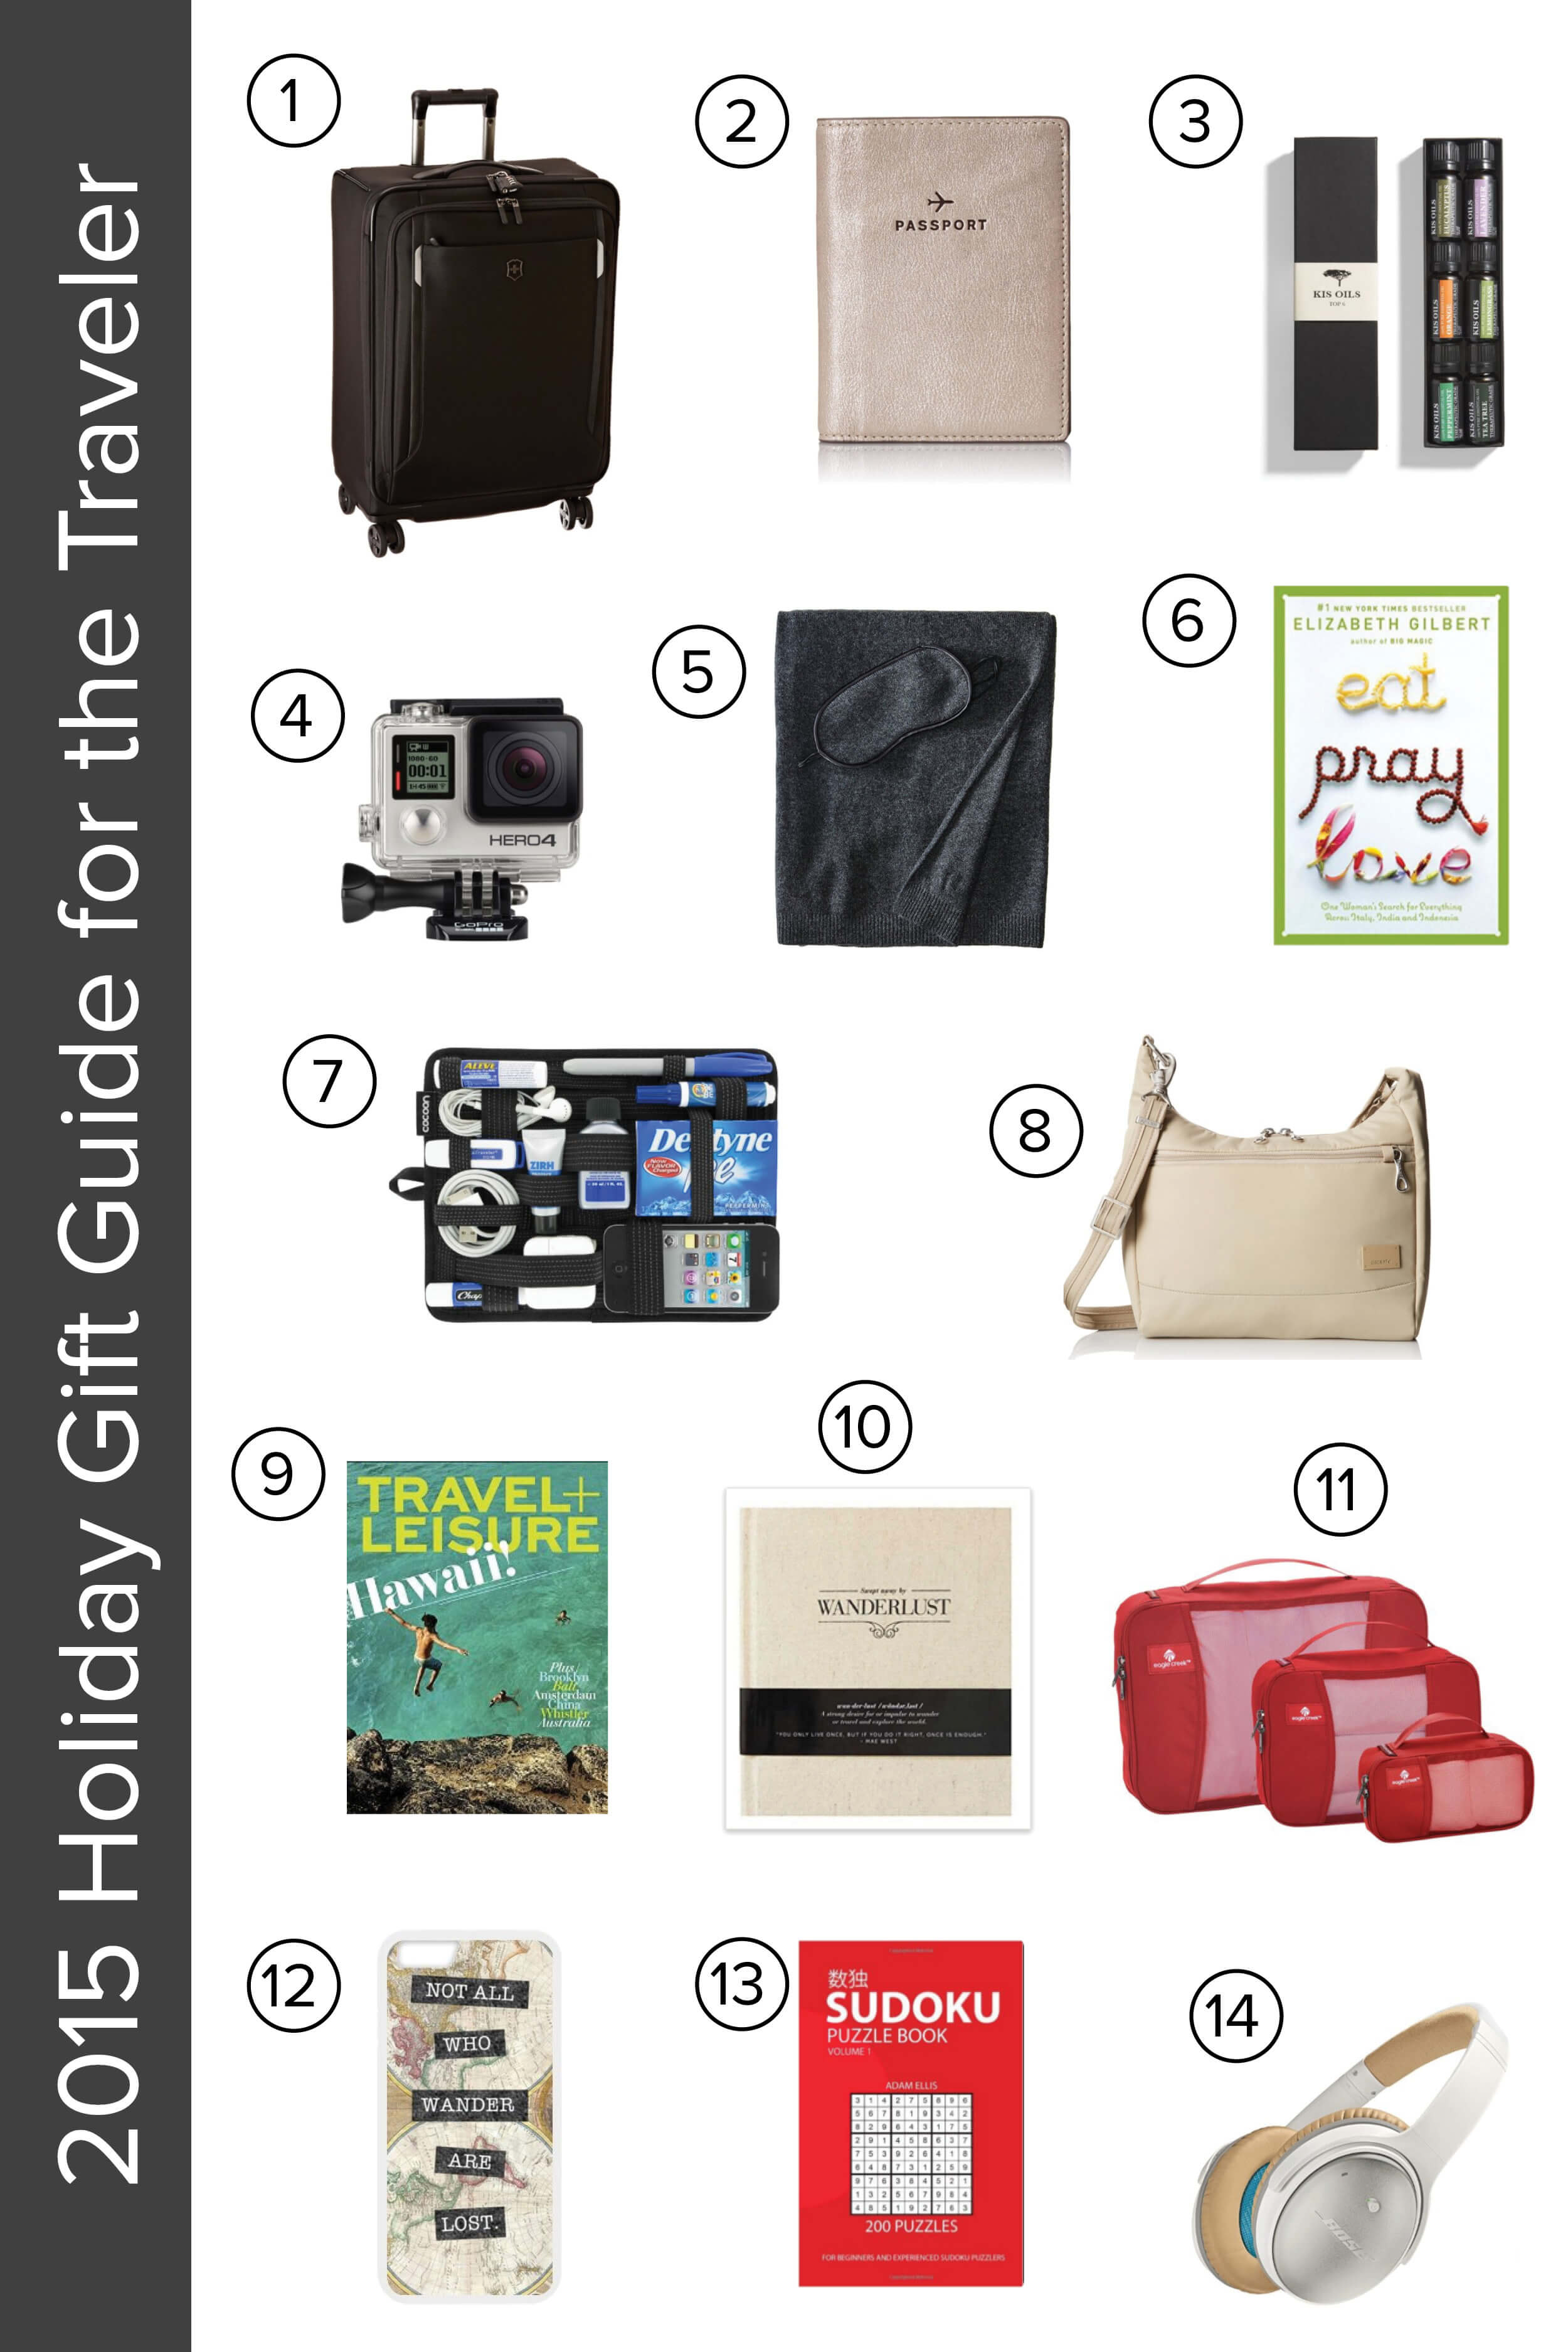 My 2015 holiday gift guide for the wanderlust traveler in your life!